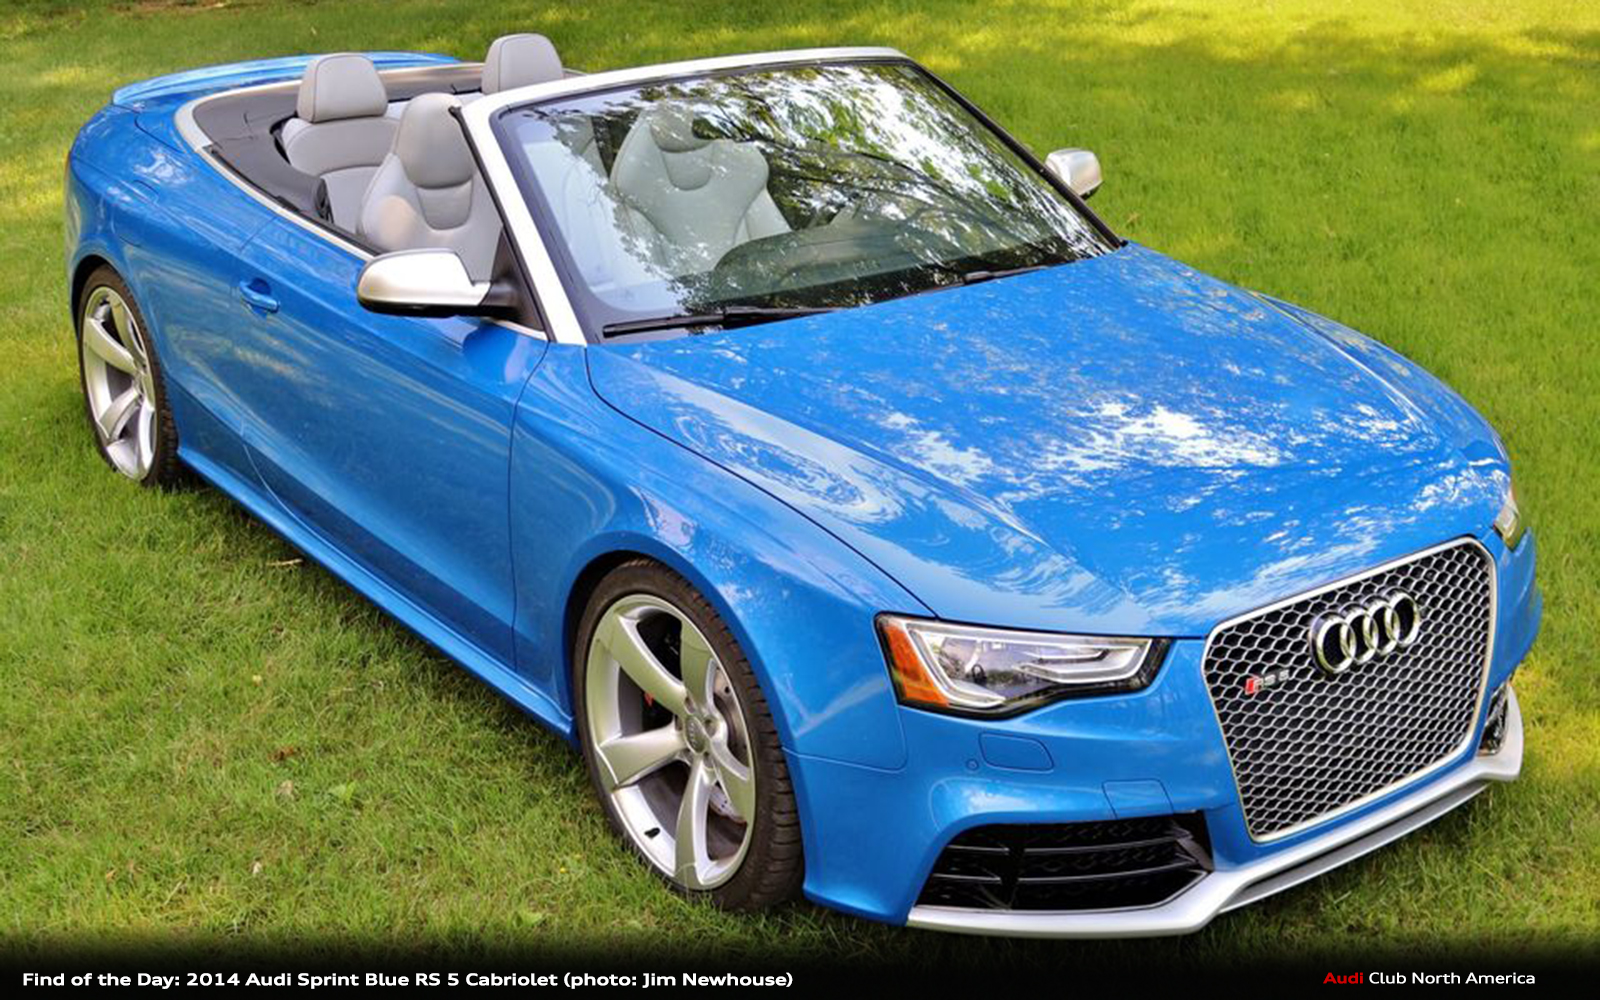 Find of the Day: 2014 Audi Sprint Blue RS 5 Cabriolet